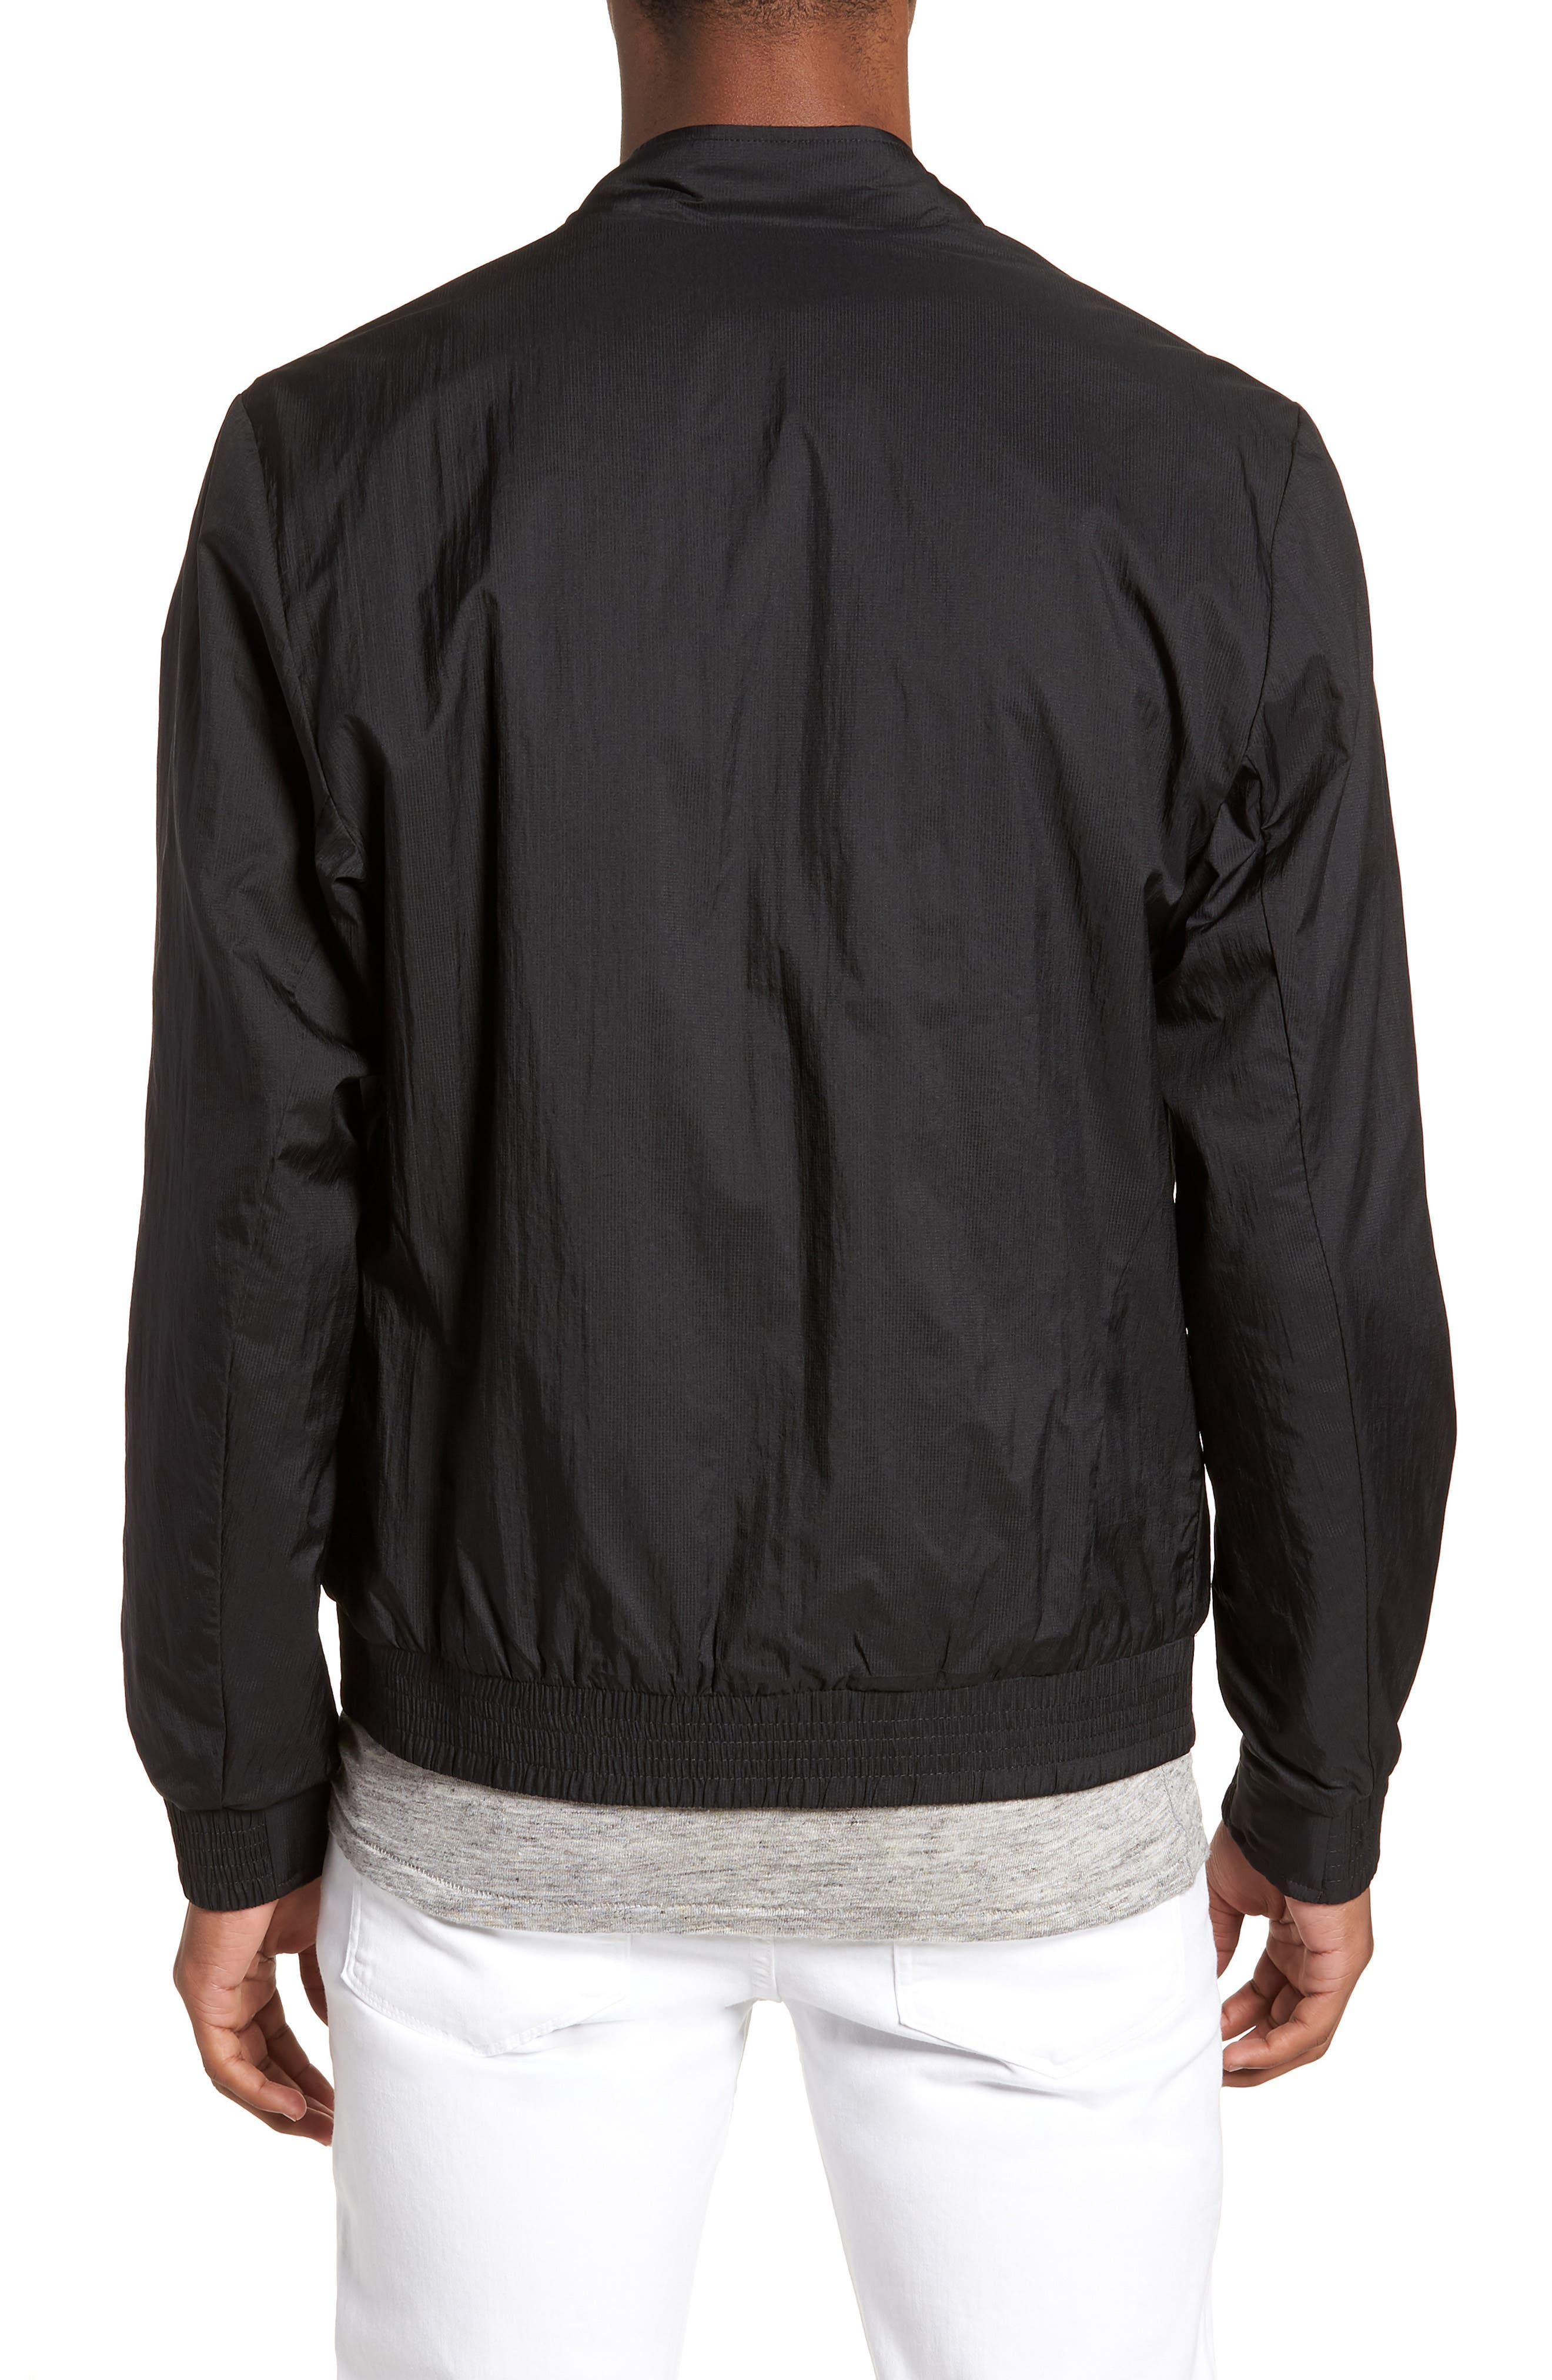 Reversible Bomber Jacket,                             Alternate thumbnail 3, color,                             Black/ Jungle Green